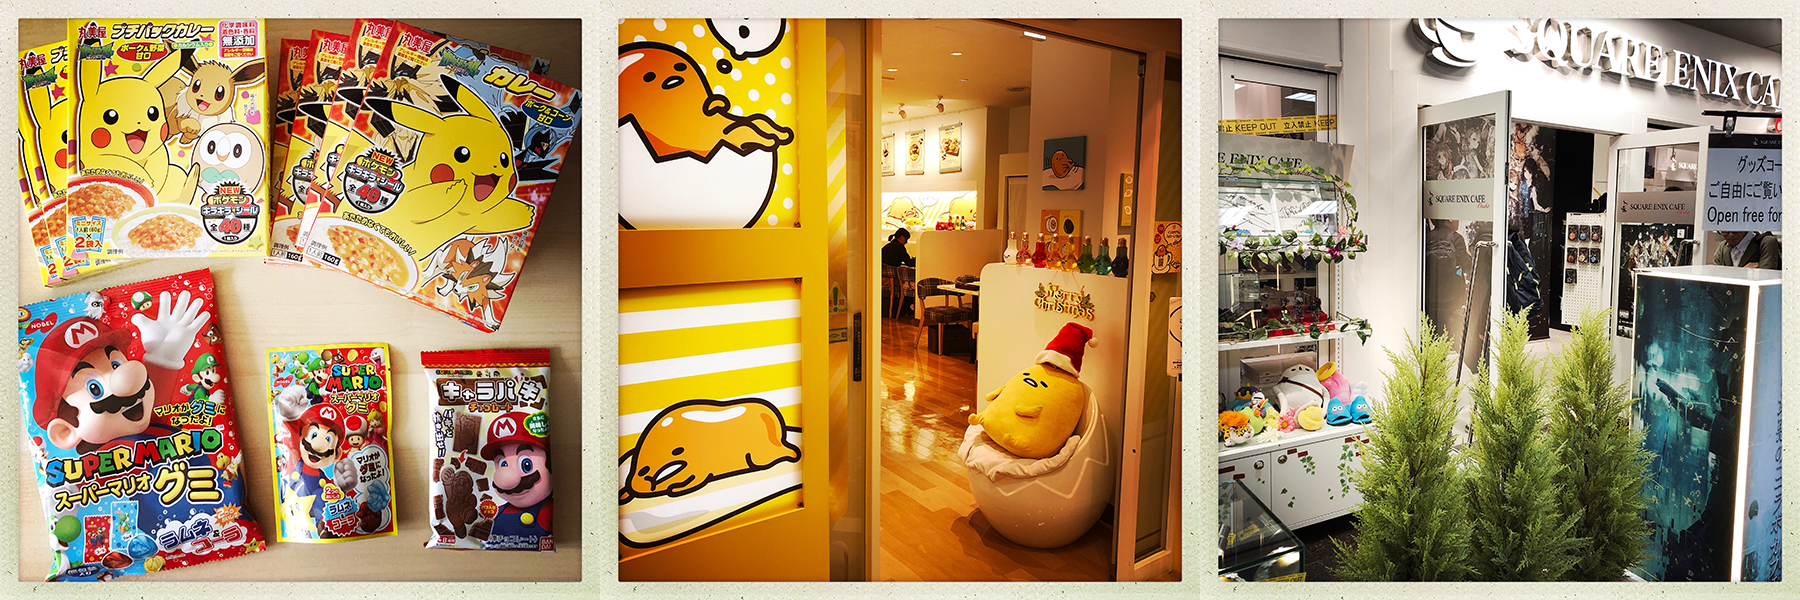 super_mario_gum_chocolate_pikachu_pokemon_instant_curry_japan_square_enix_cafe_gudetama_cafe.jpg